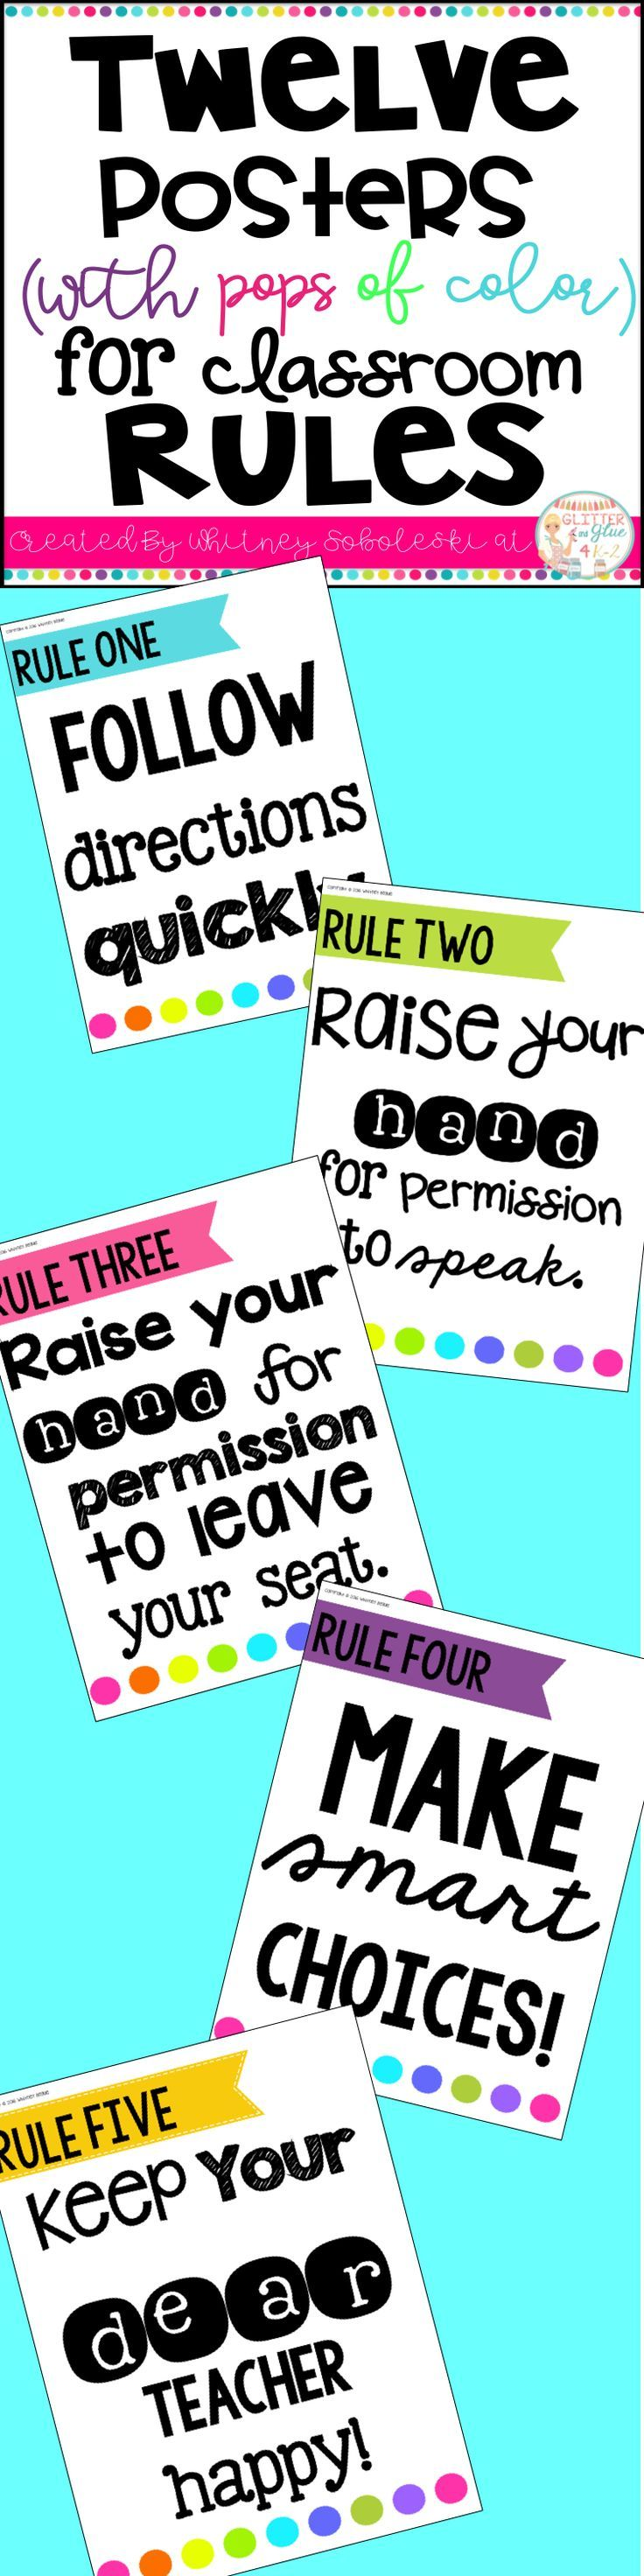 Poster design keywords - Twelve Posters With Pops Of Color For Classroom Rules